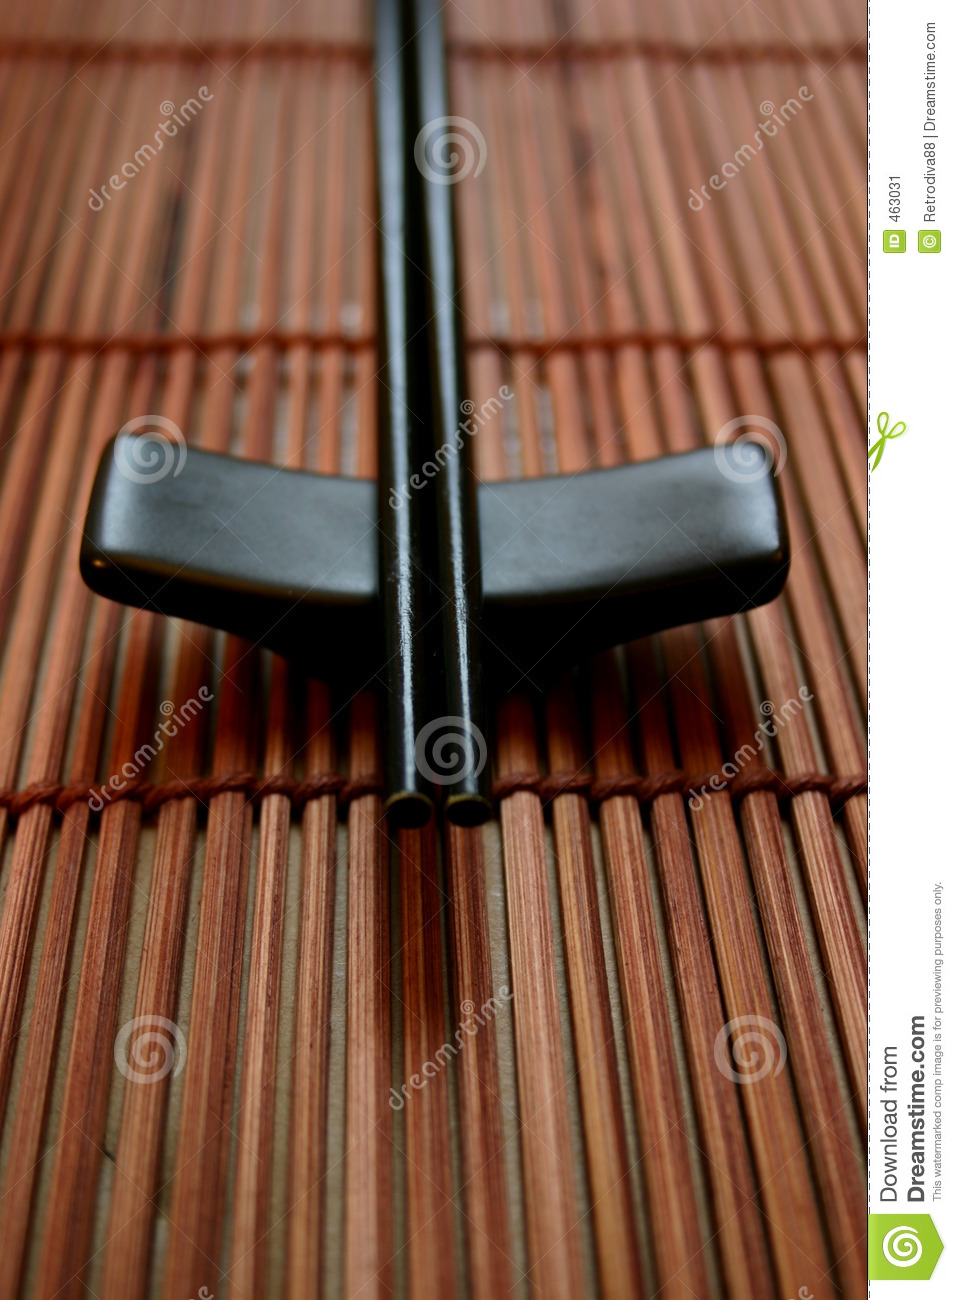 Download Asian Dining Set - Chopsticks And The Holder Stock Image - Image of neutral, elements: 463031